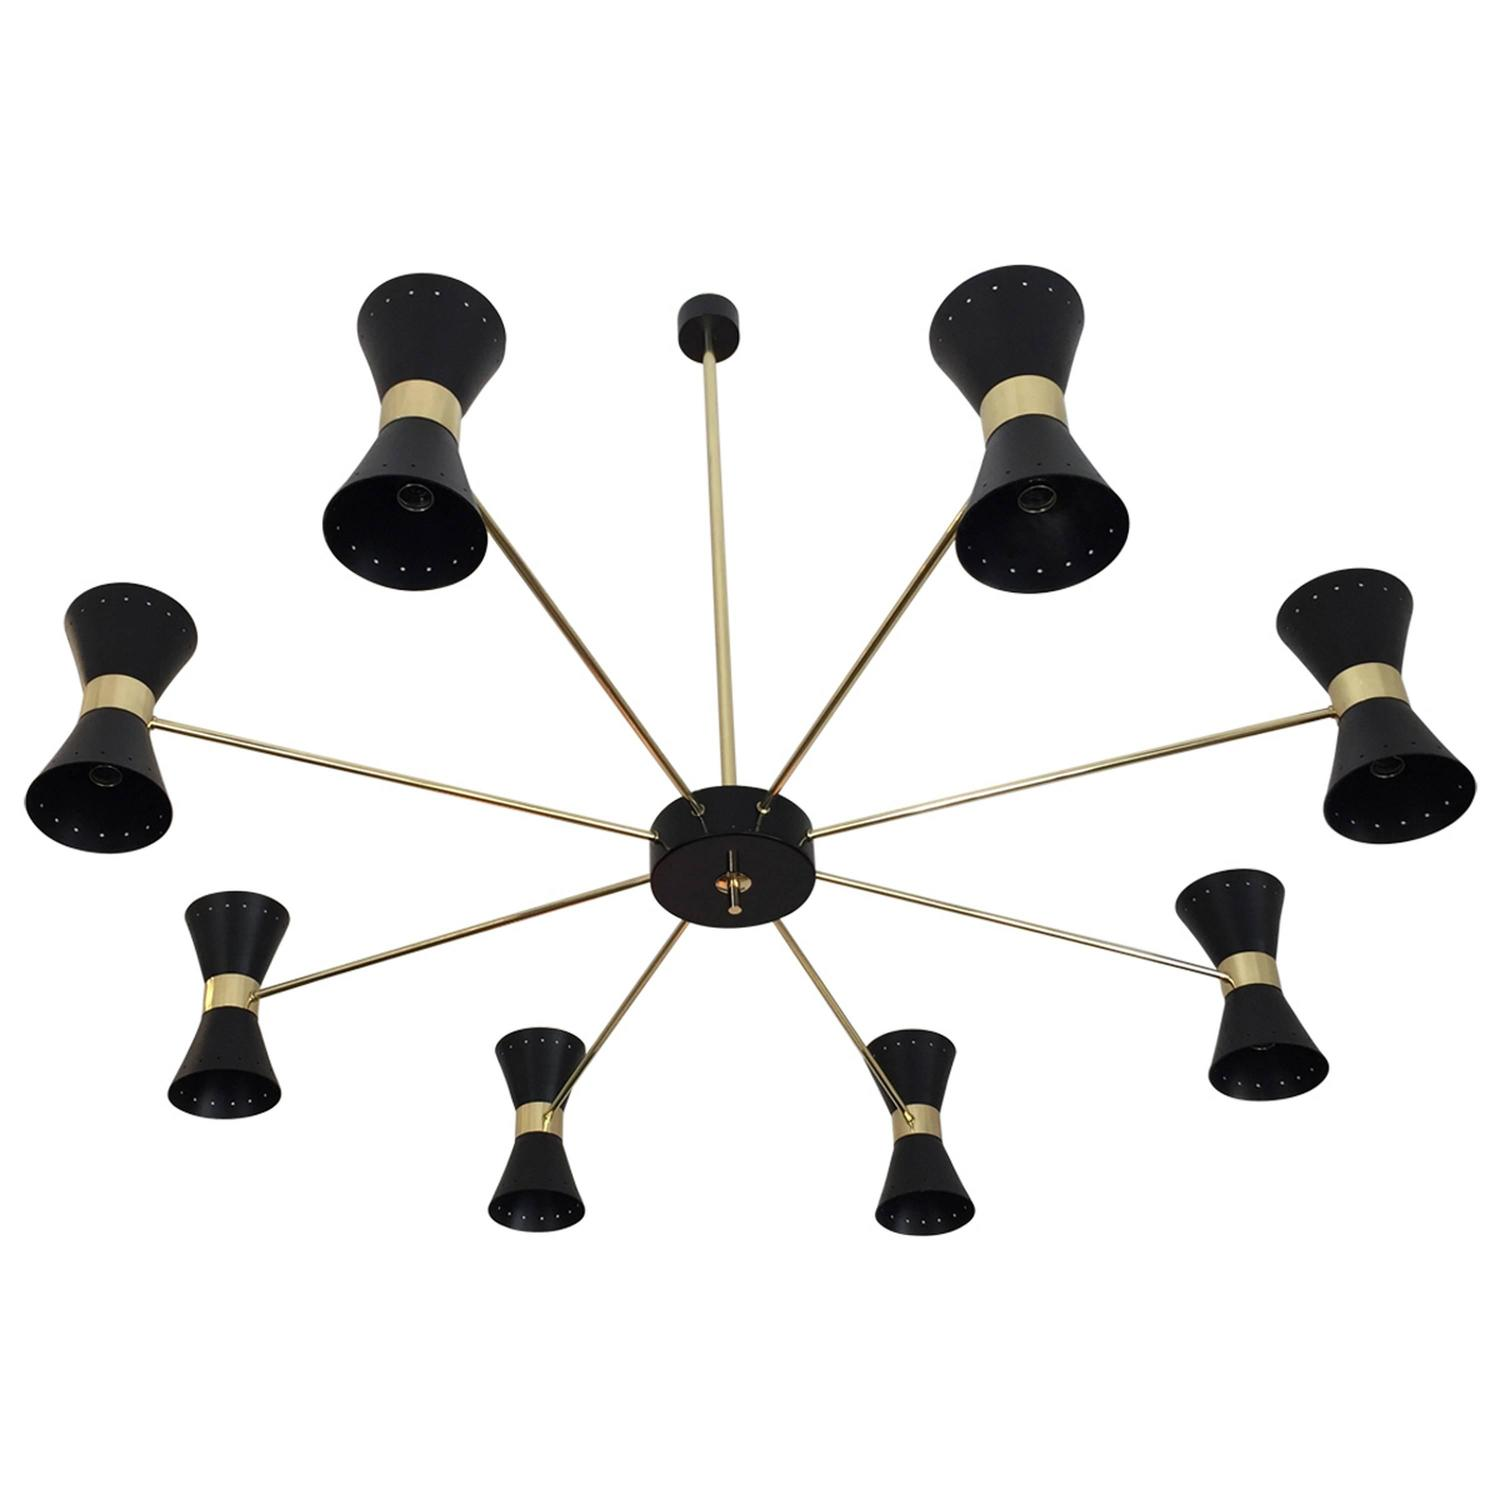 Large Double Ring Chandelier At 1stdibs: Rare Large Double Coned Mid-Century Chandelier In The Art